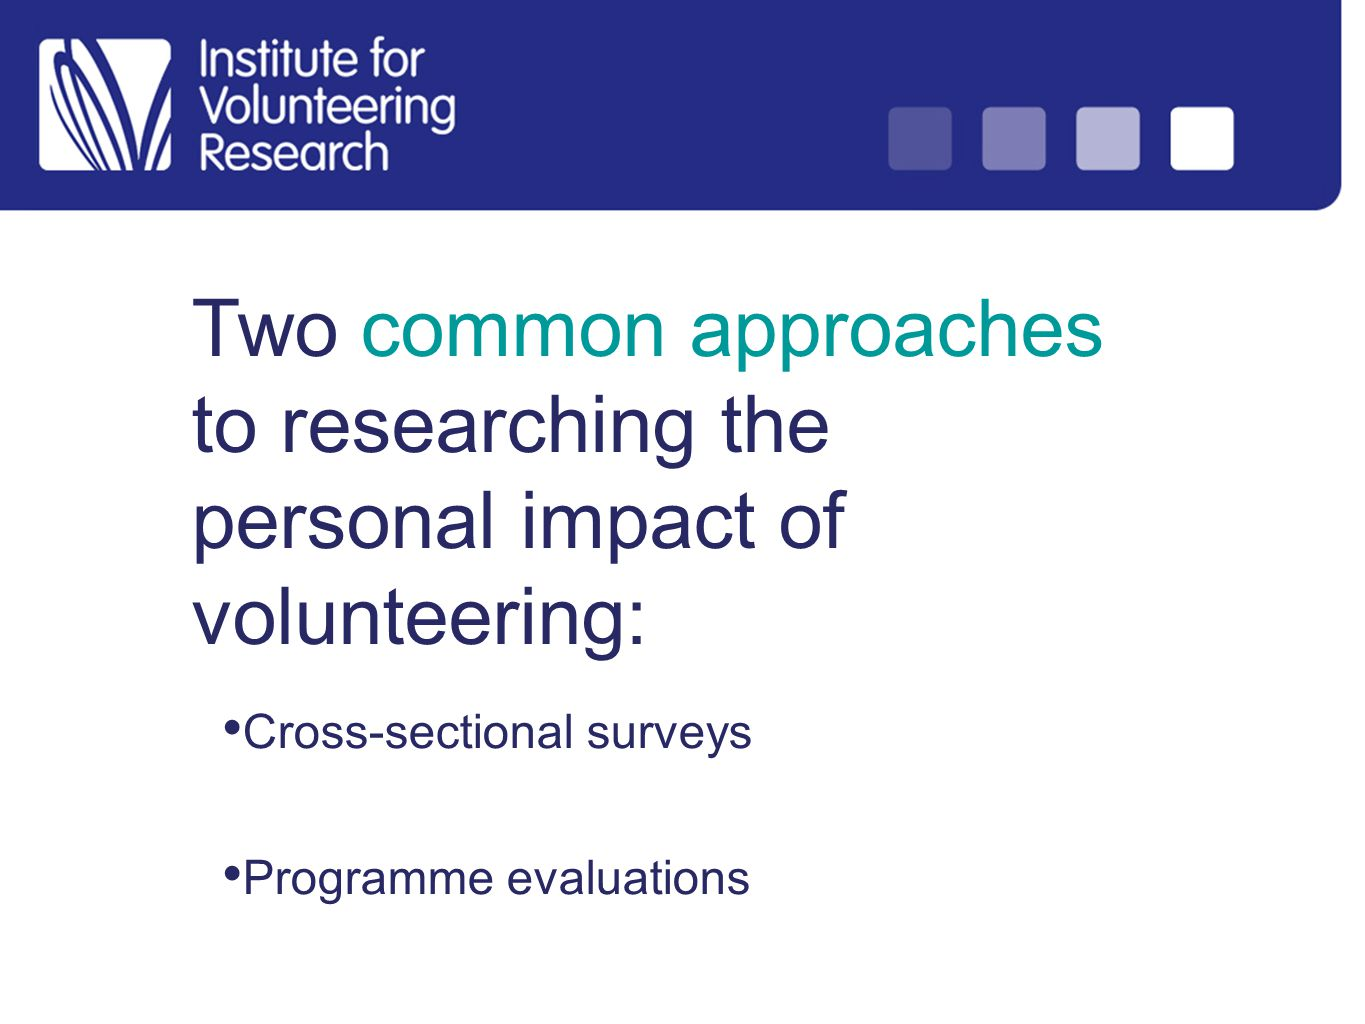 Two common approaches to researching the personal impact of volunteering: Cross-sectional surveys Programme evaluations